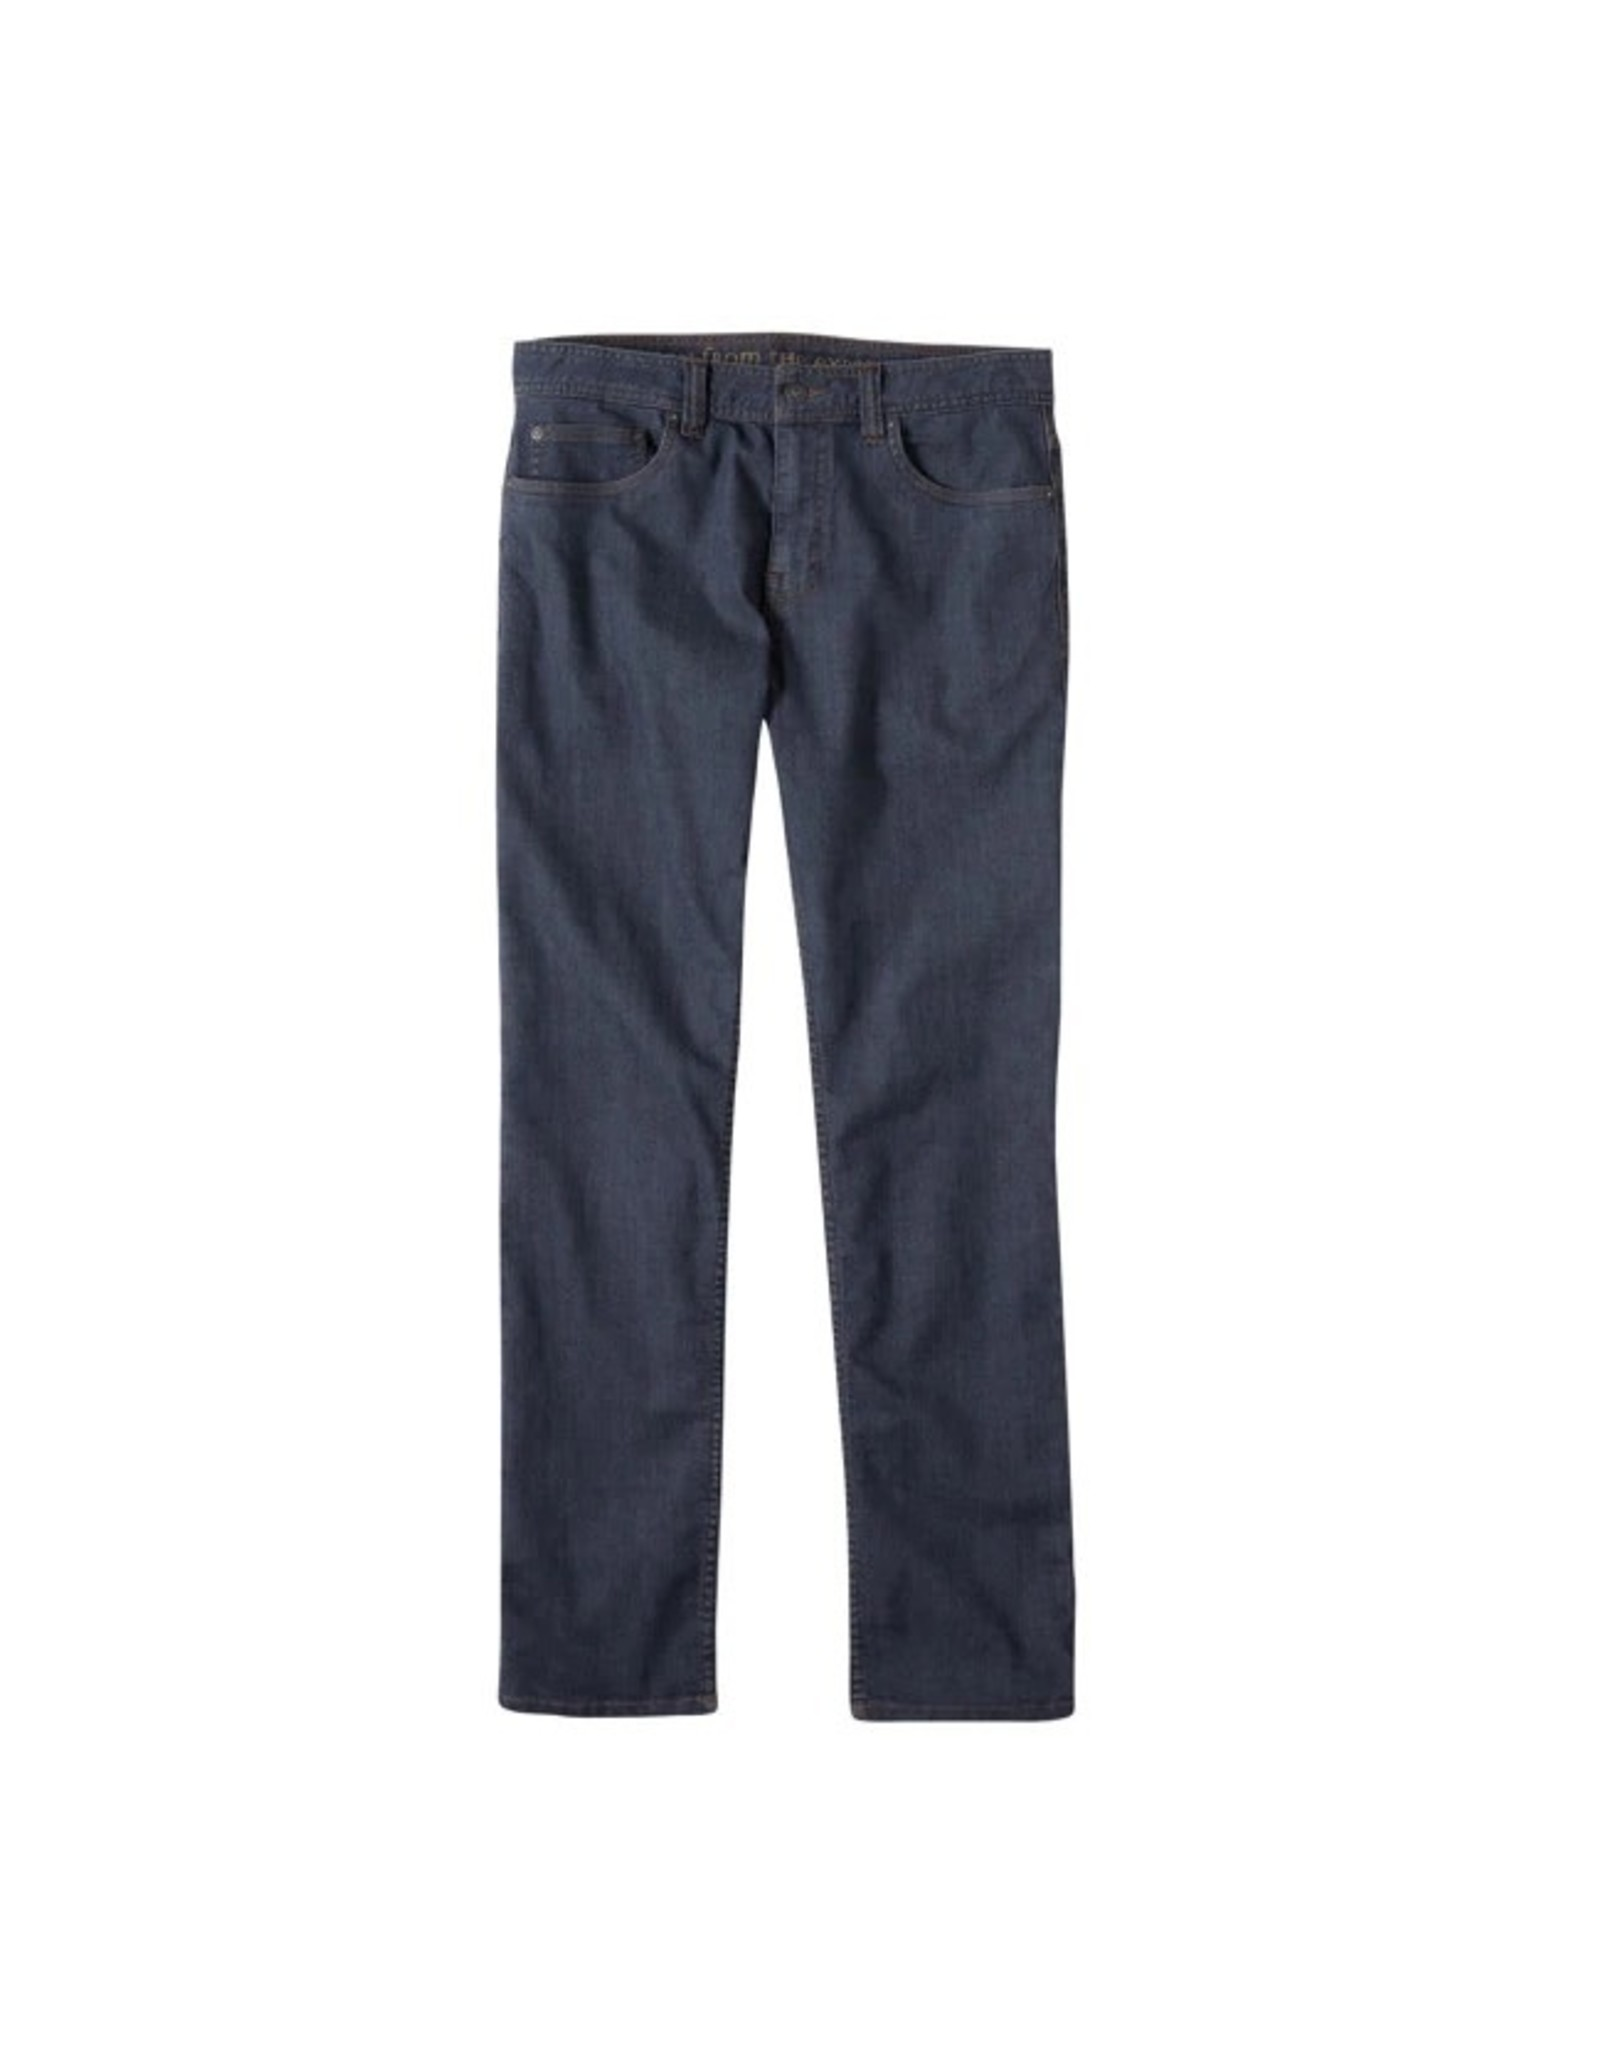 Prana Prana Bridger Jean: Denim- 32/32